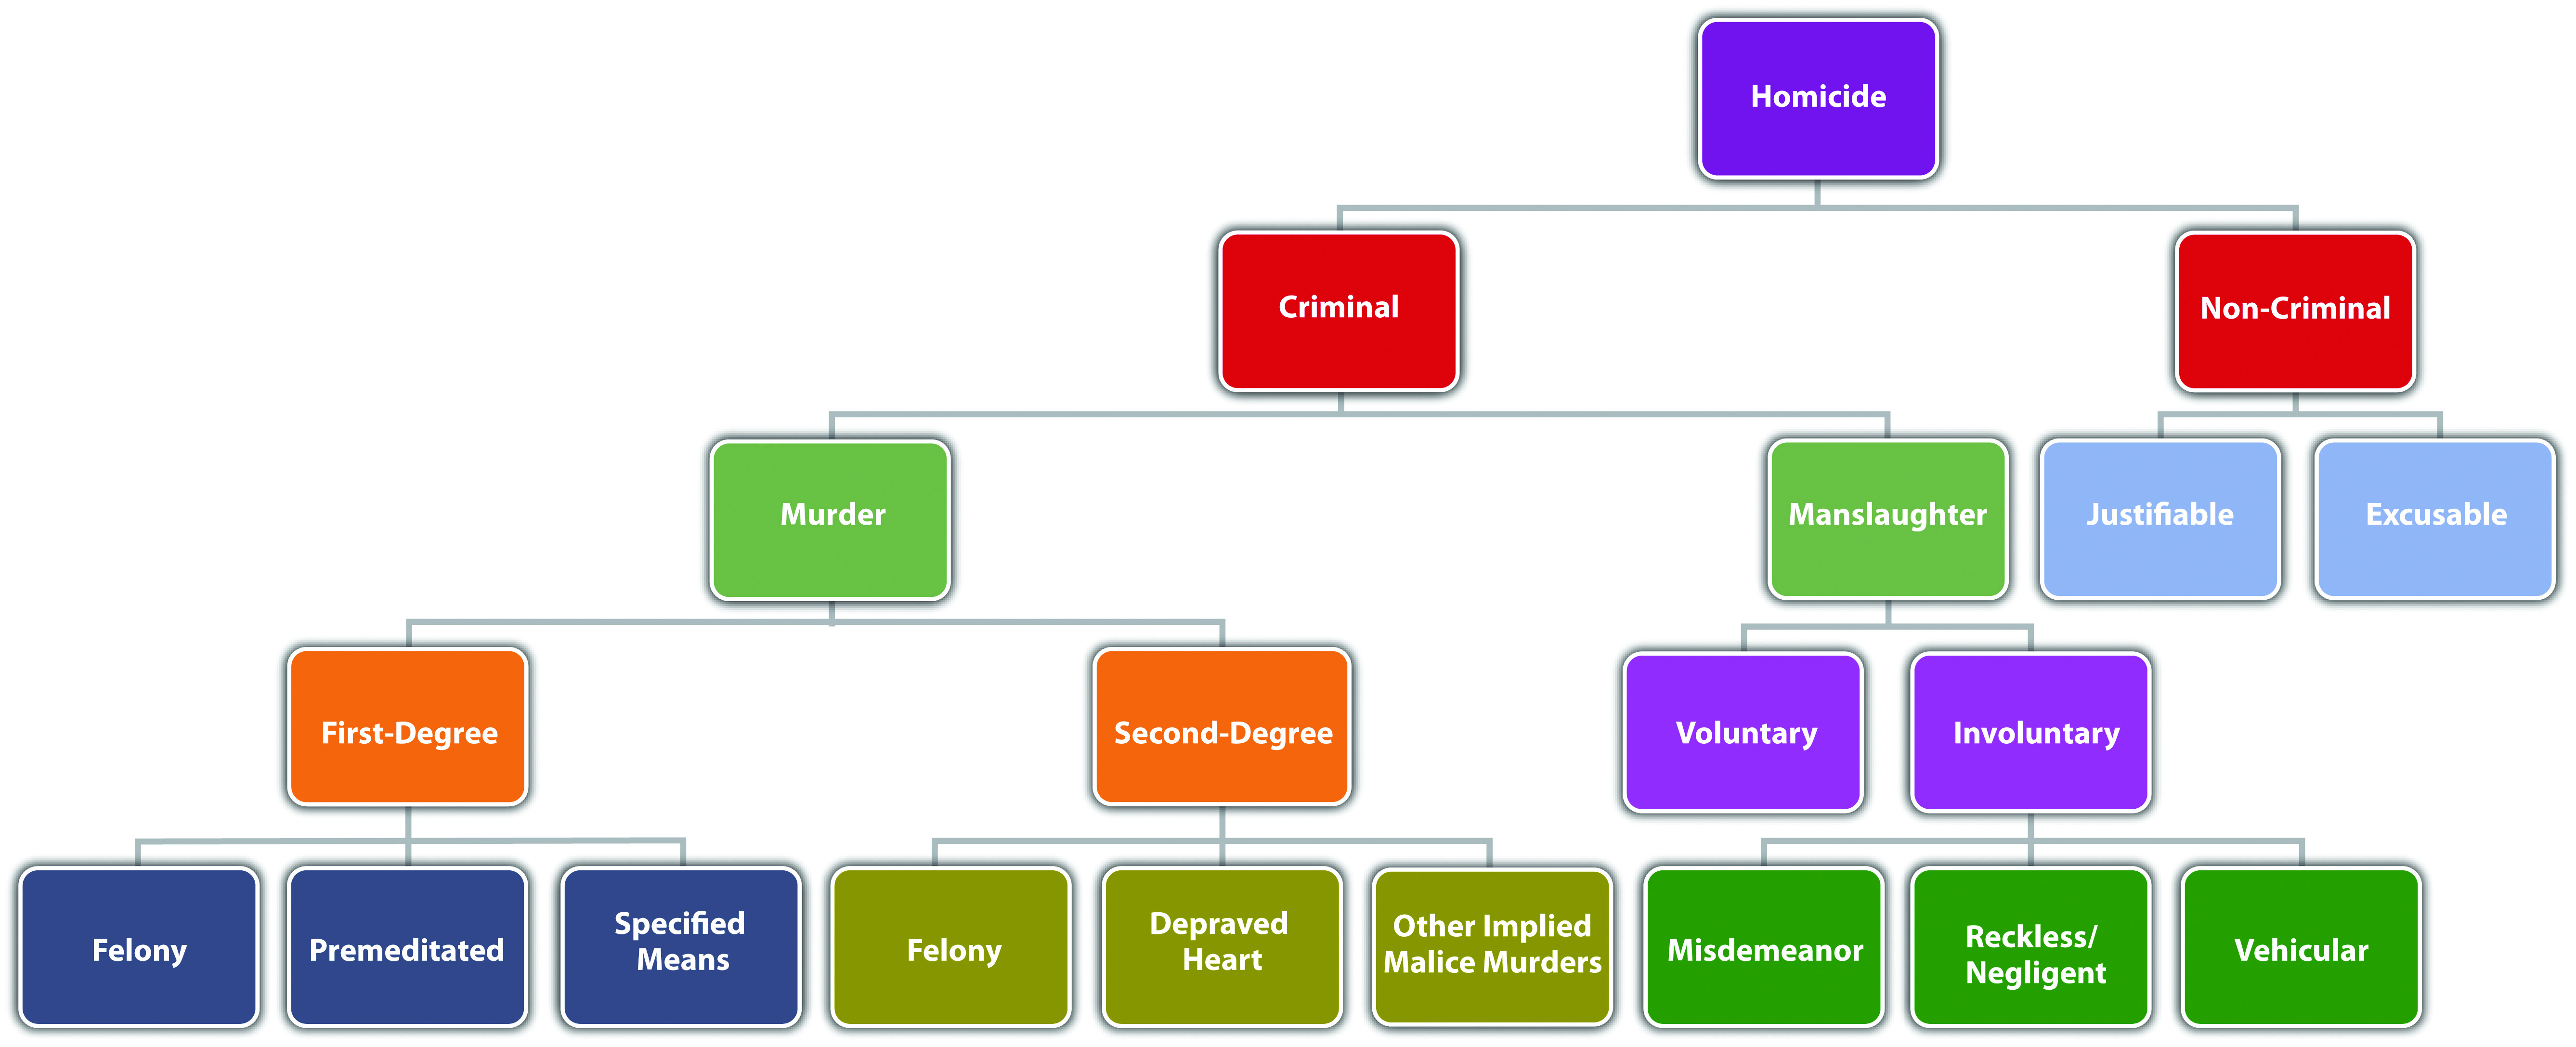 What is the difference between voluntary and involuntary manslaughter